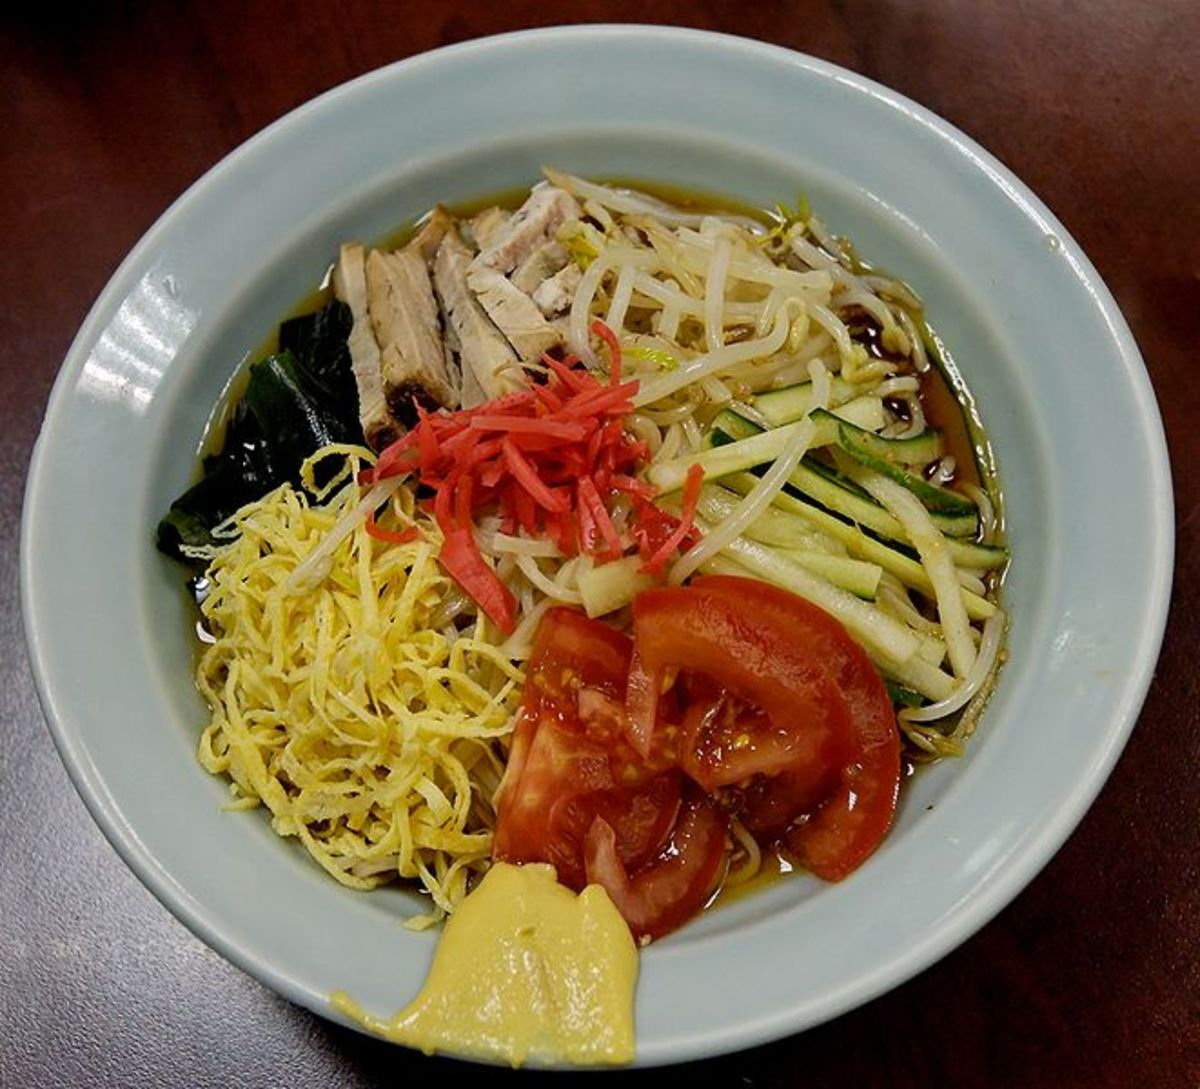 Ramen in Paris -- This cold dish is of noodles, pork, omelette shreds, wakame seaweed and cucumber in a vinegar base sauce or soup. (public domain)